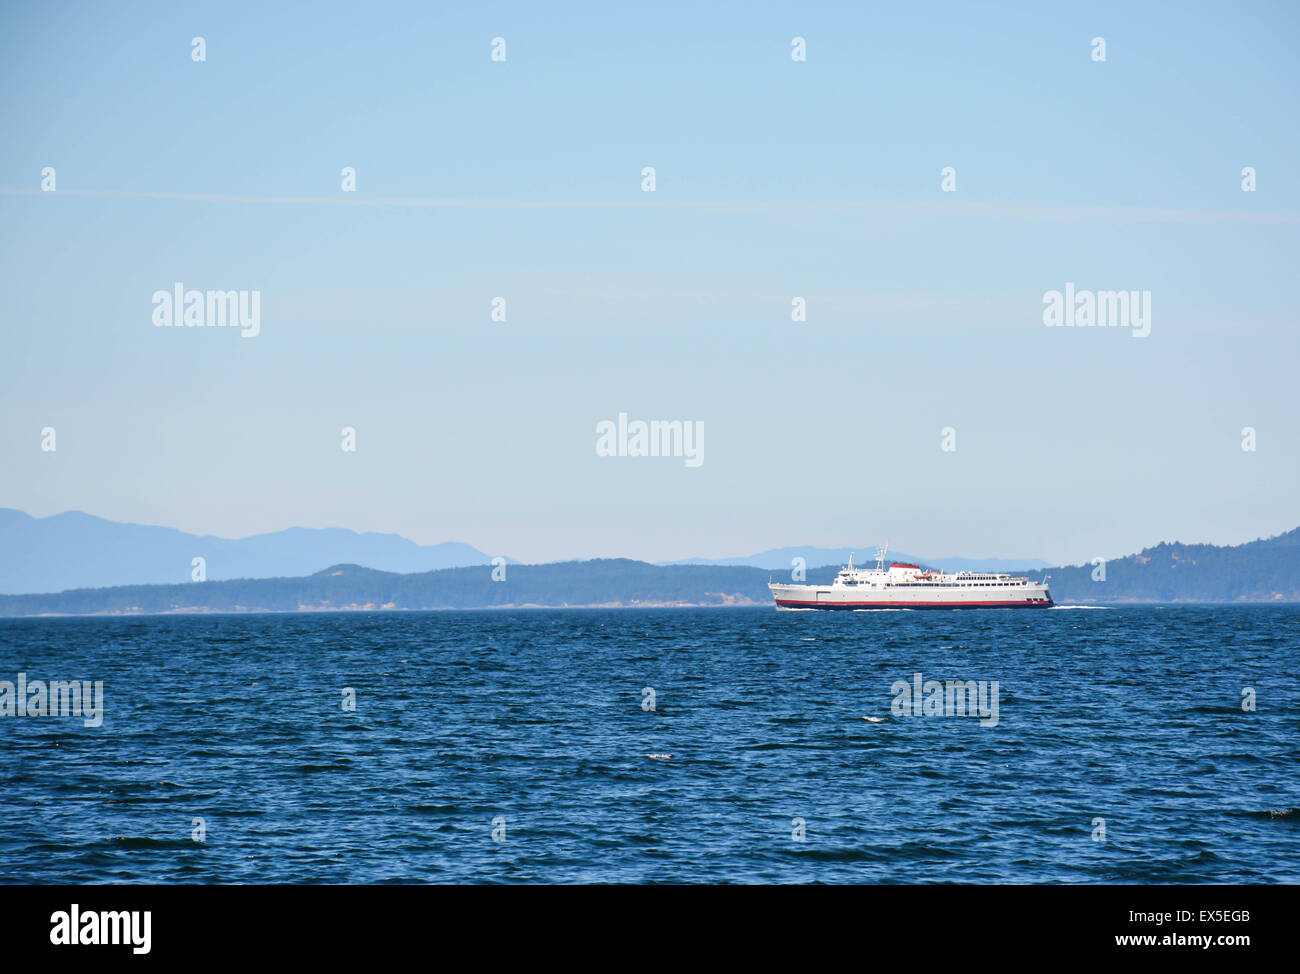 Washington State Ferry between Seattle and Victoria, B.C. - Stock Image